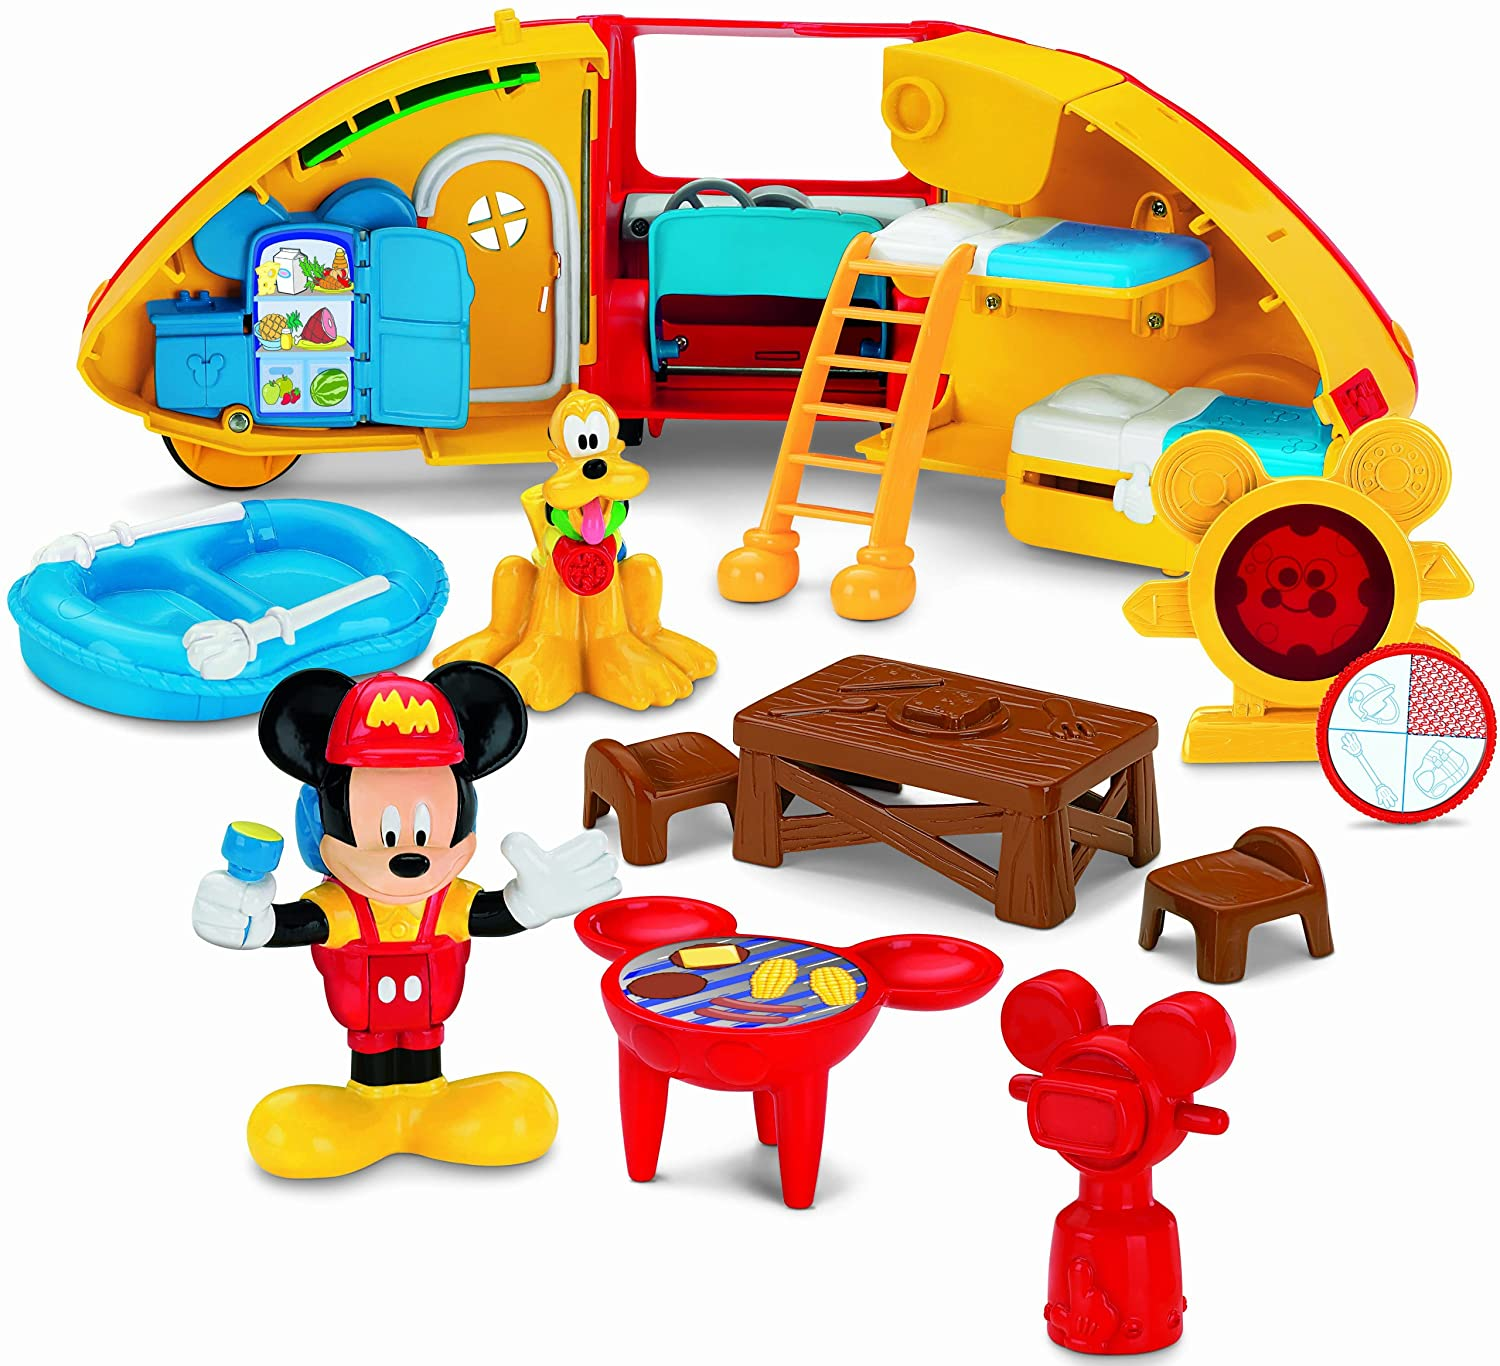 Toys For Age 2 : Great mickey mouse clubhouse toys for young children